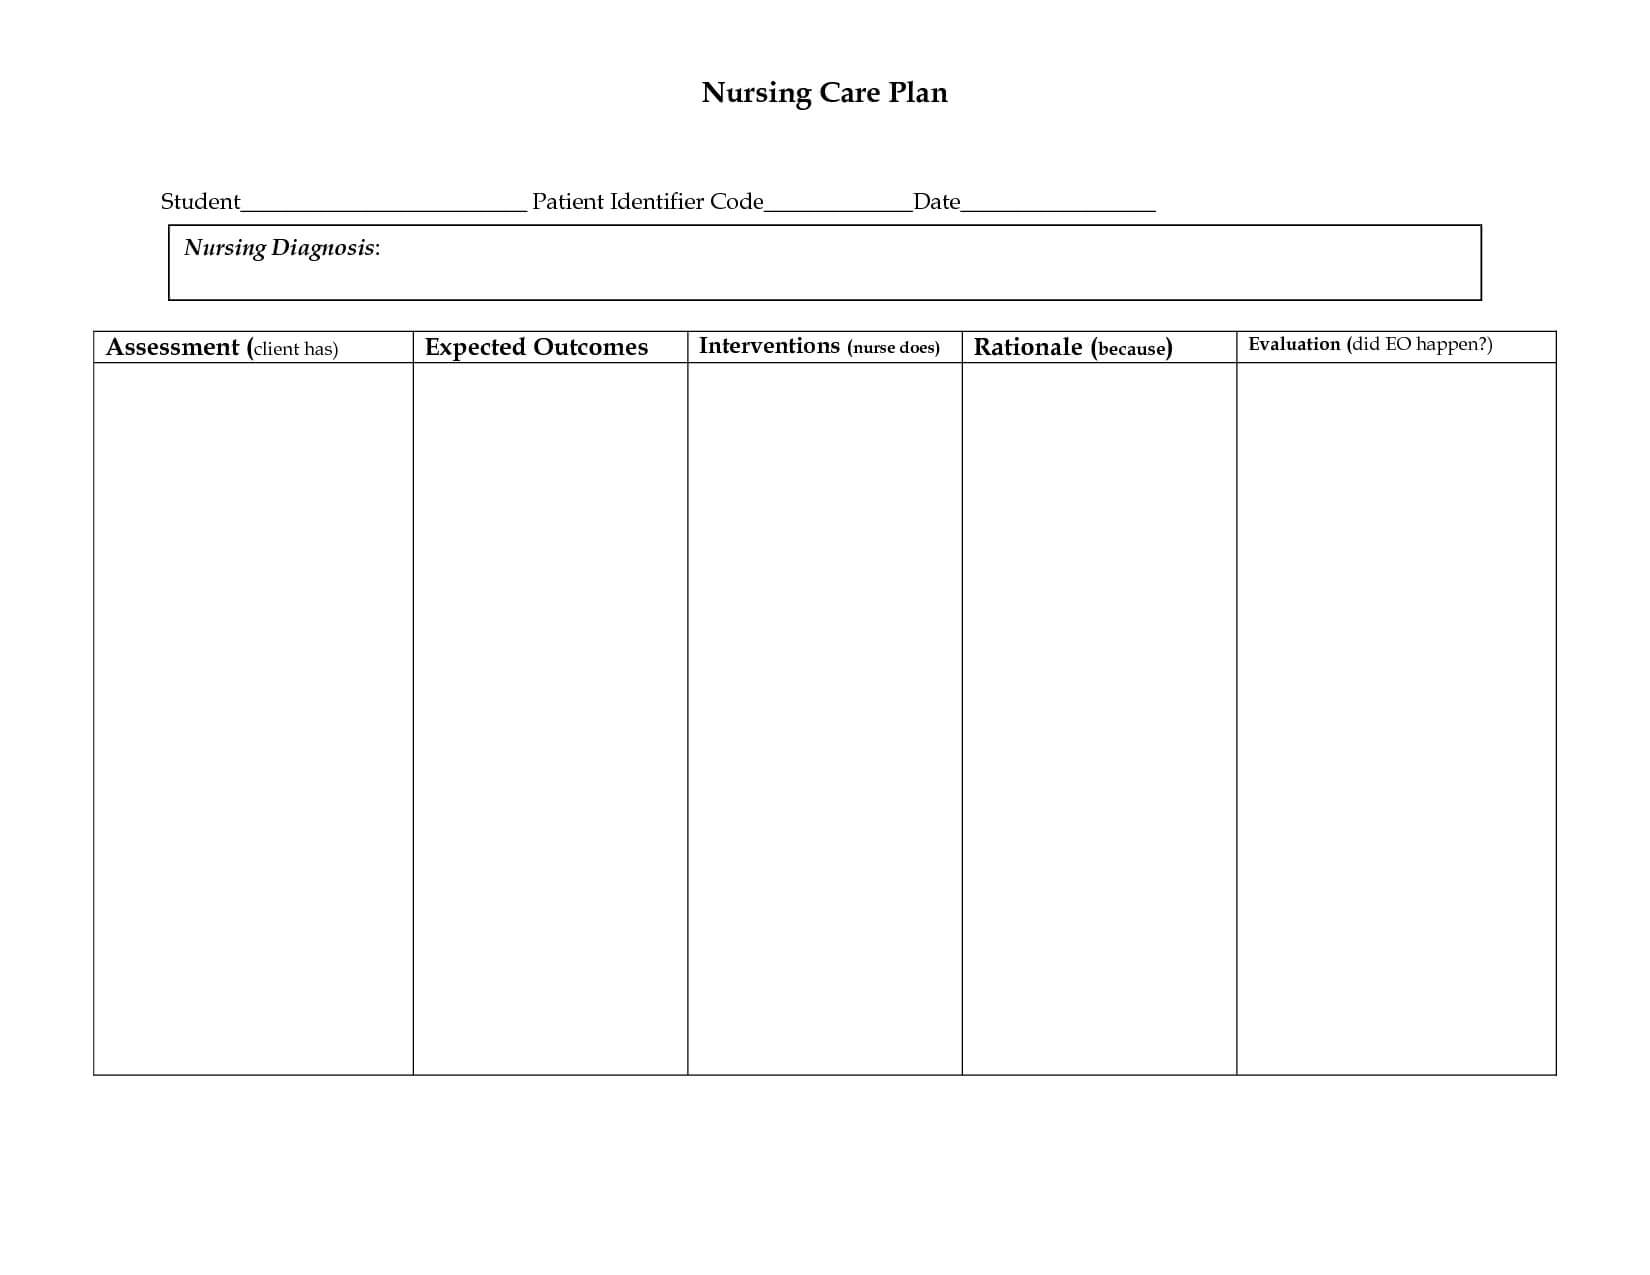 006 Nursing Care Plan Template Ideas Free Templates Business Throughout Nursing Care Plan Template Word